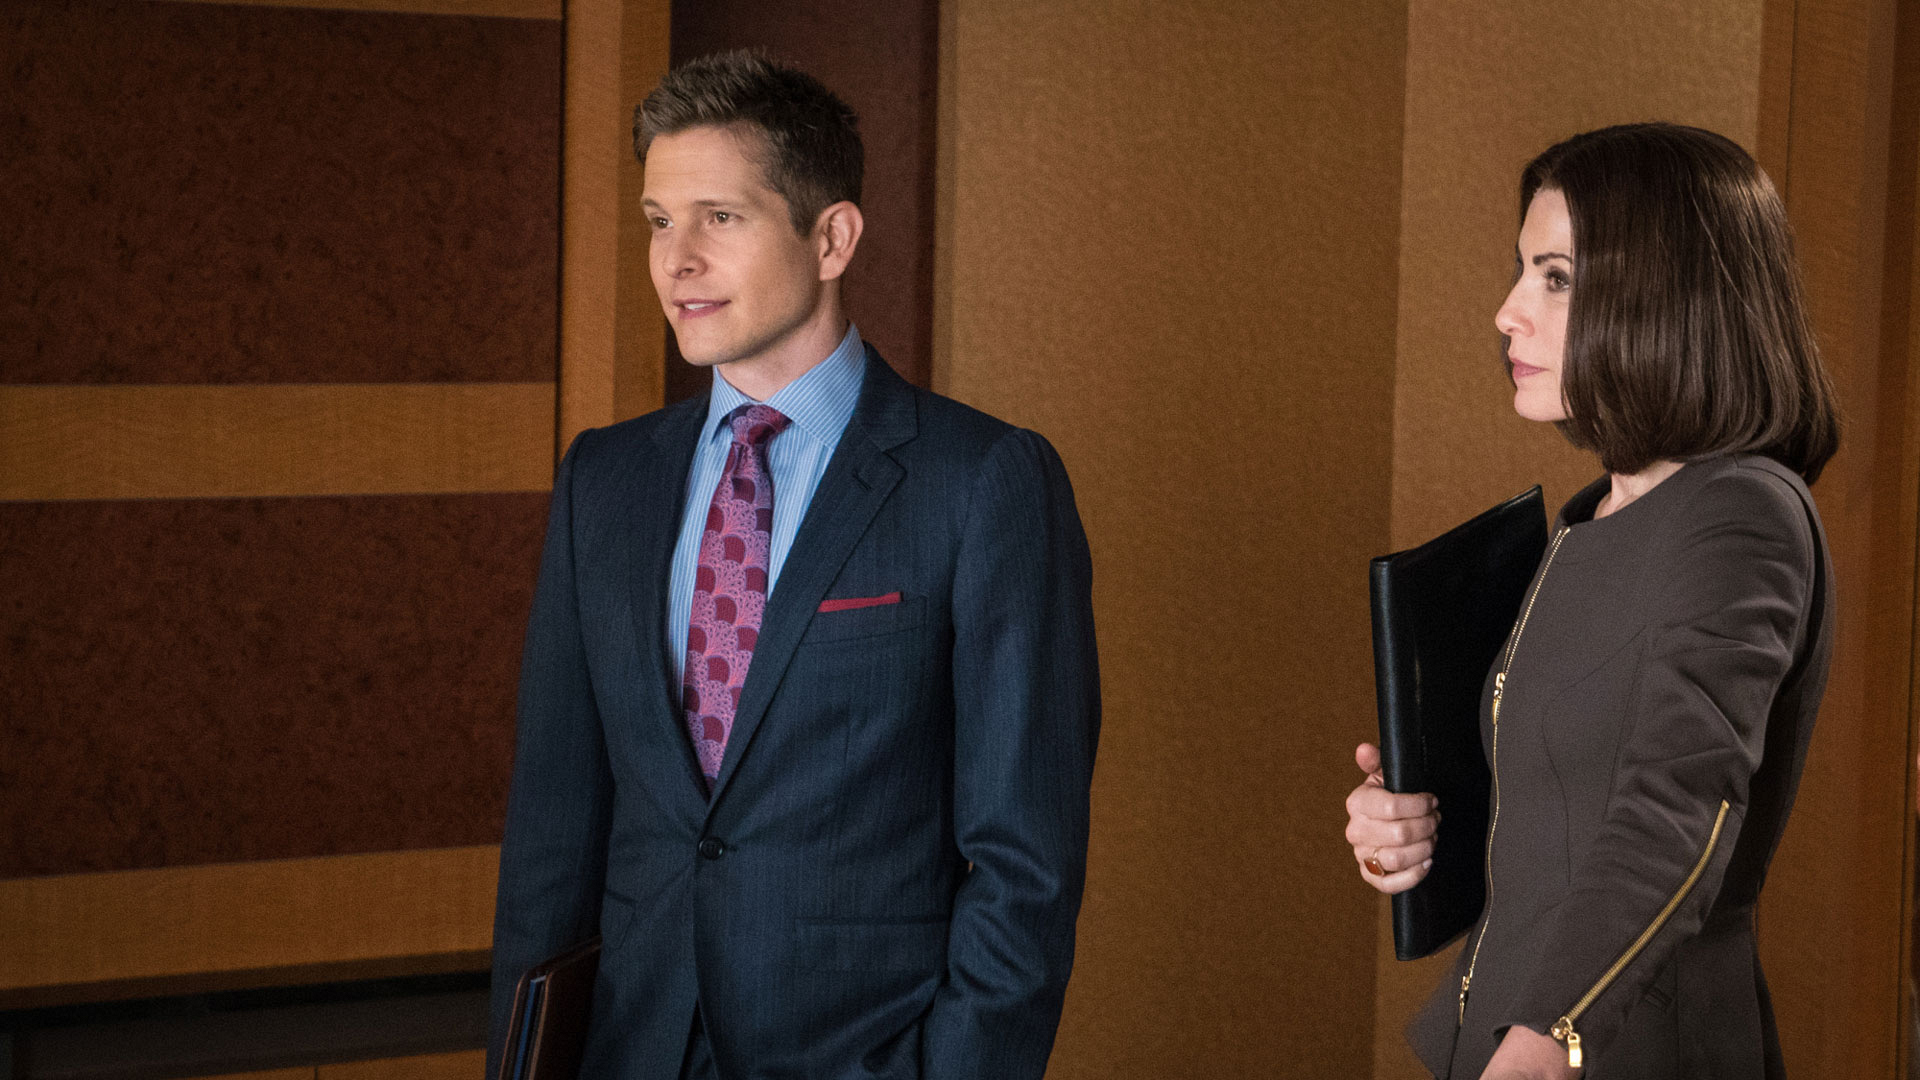 Matt Czuchry as Cary Agos and Julianna Margulies as Alicia Florrick